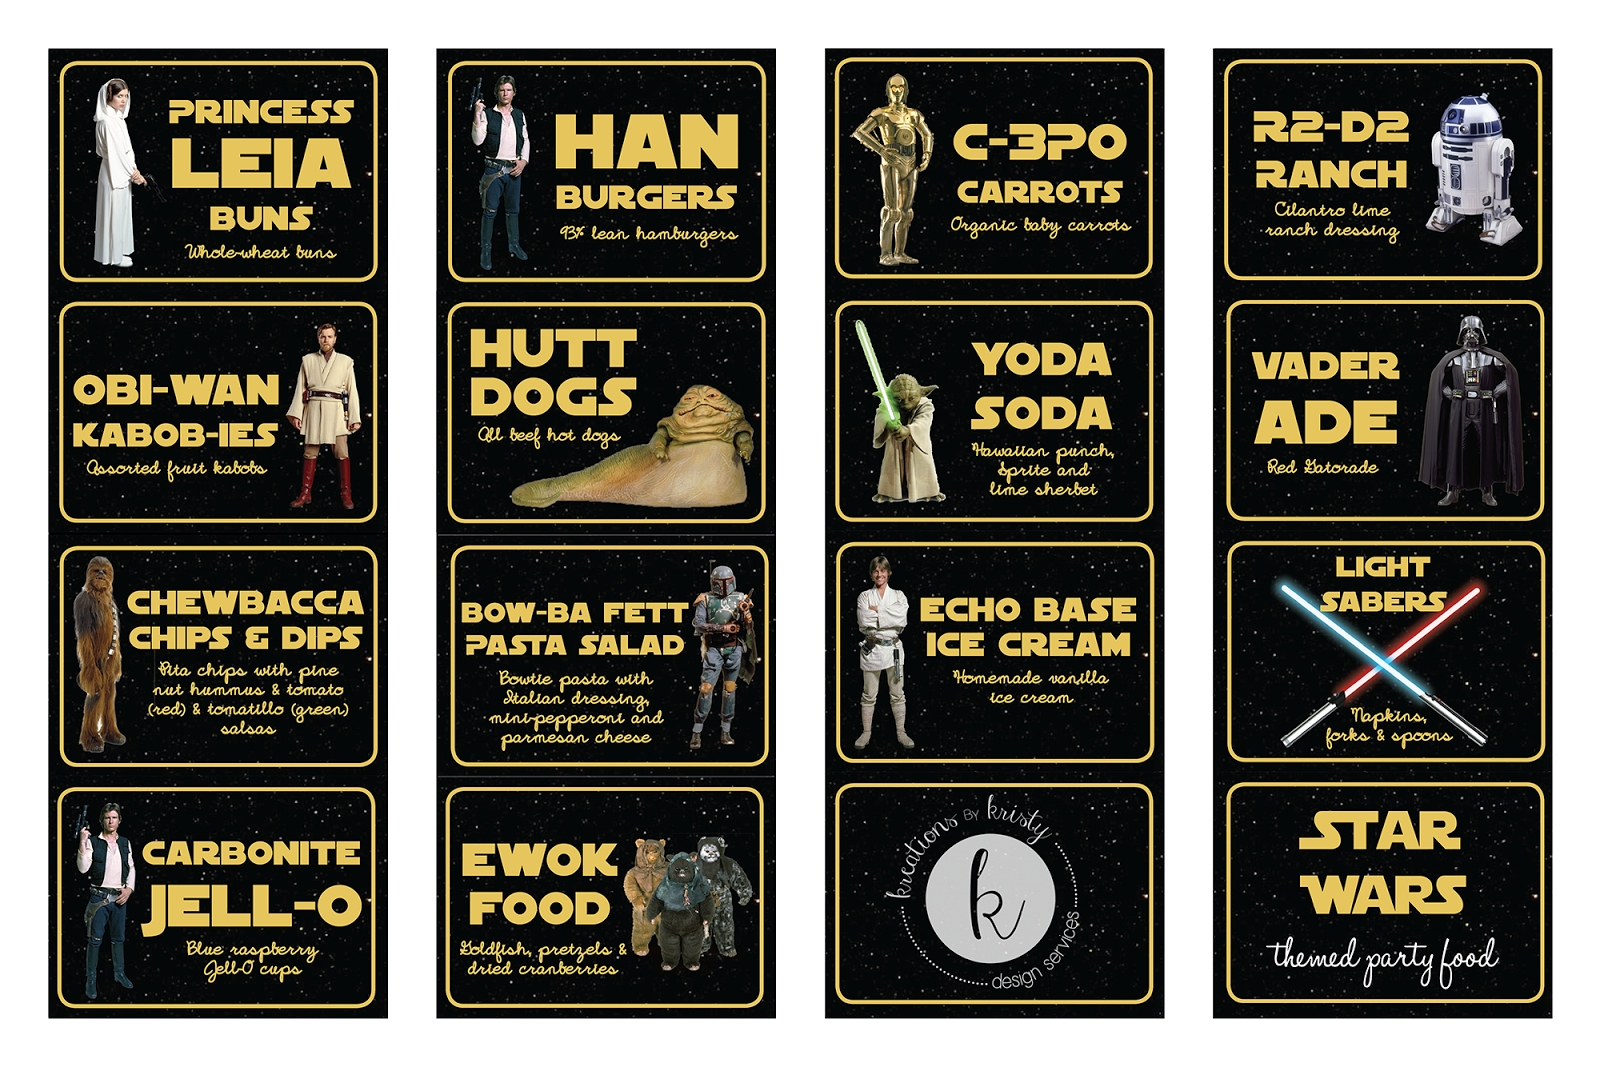 10 Unique Star Wars Party Food Ideas star wars themed party food kreationskristy parties star 2020